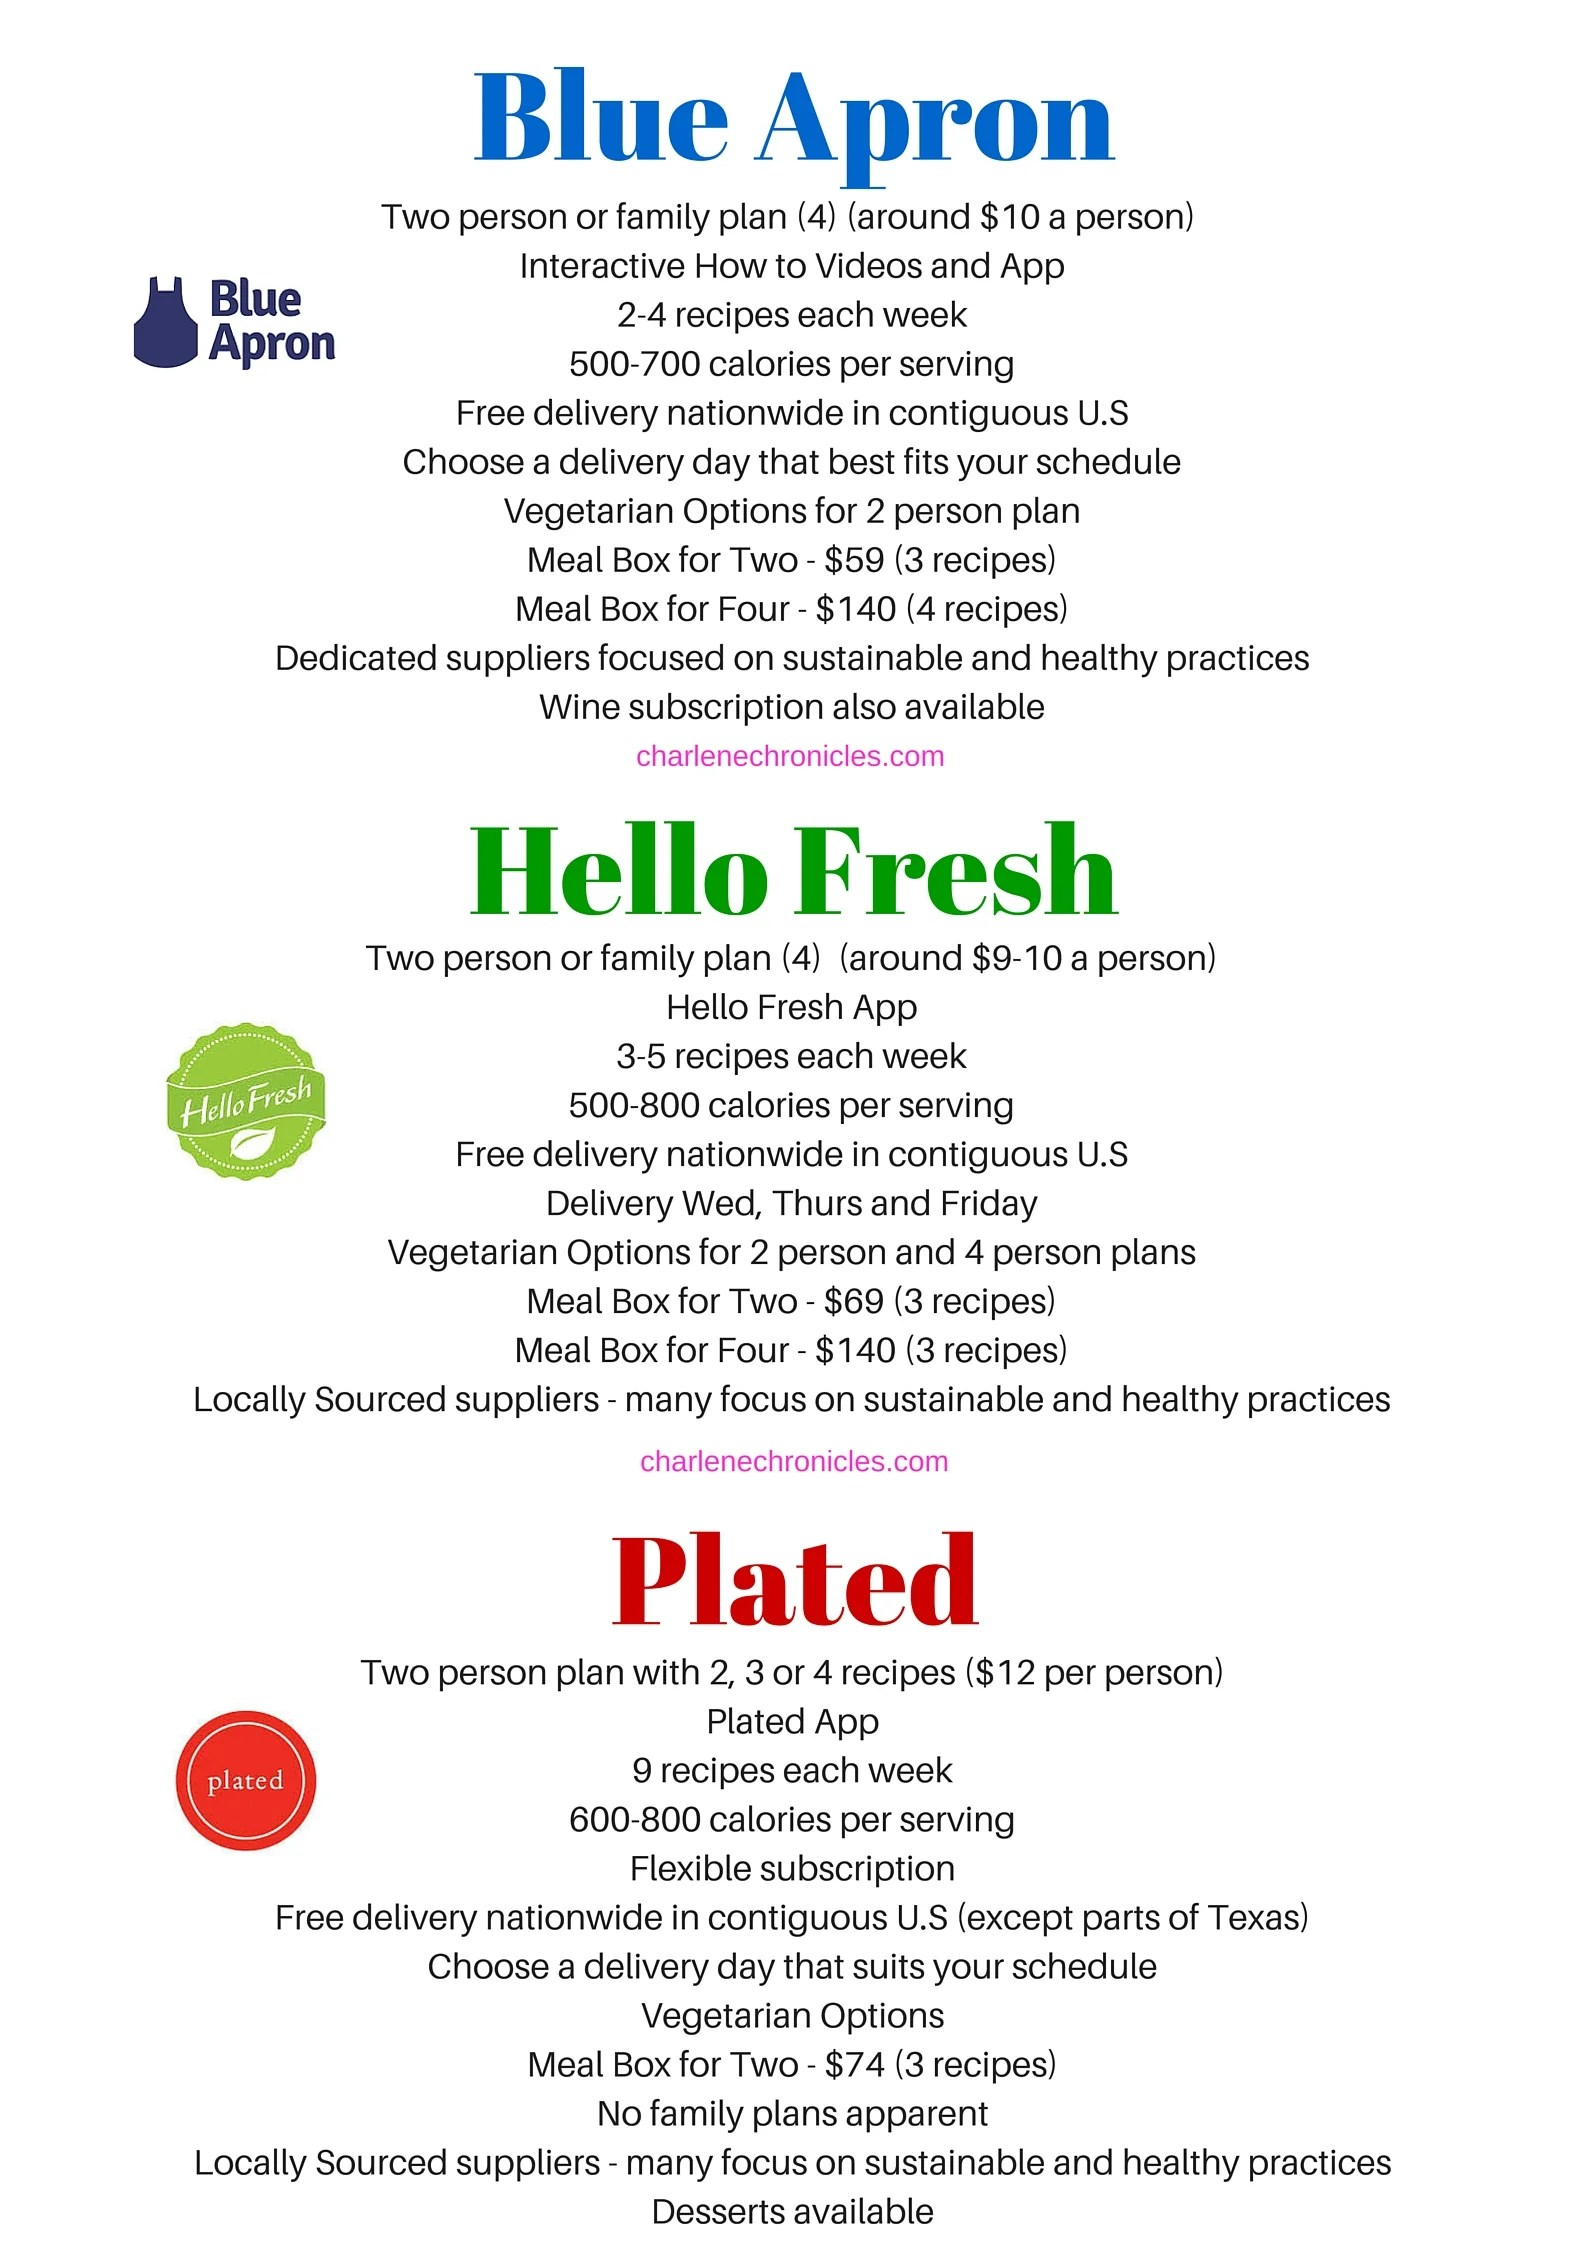 Blue apron or hello fresh -  Blue Apron Or Plated But The Healthy Meal Delivery Concepts Seem The Same As Hello Fresh However I Wanted To Compare Them And Did Some Research On